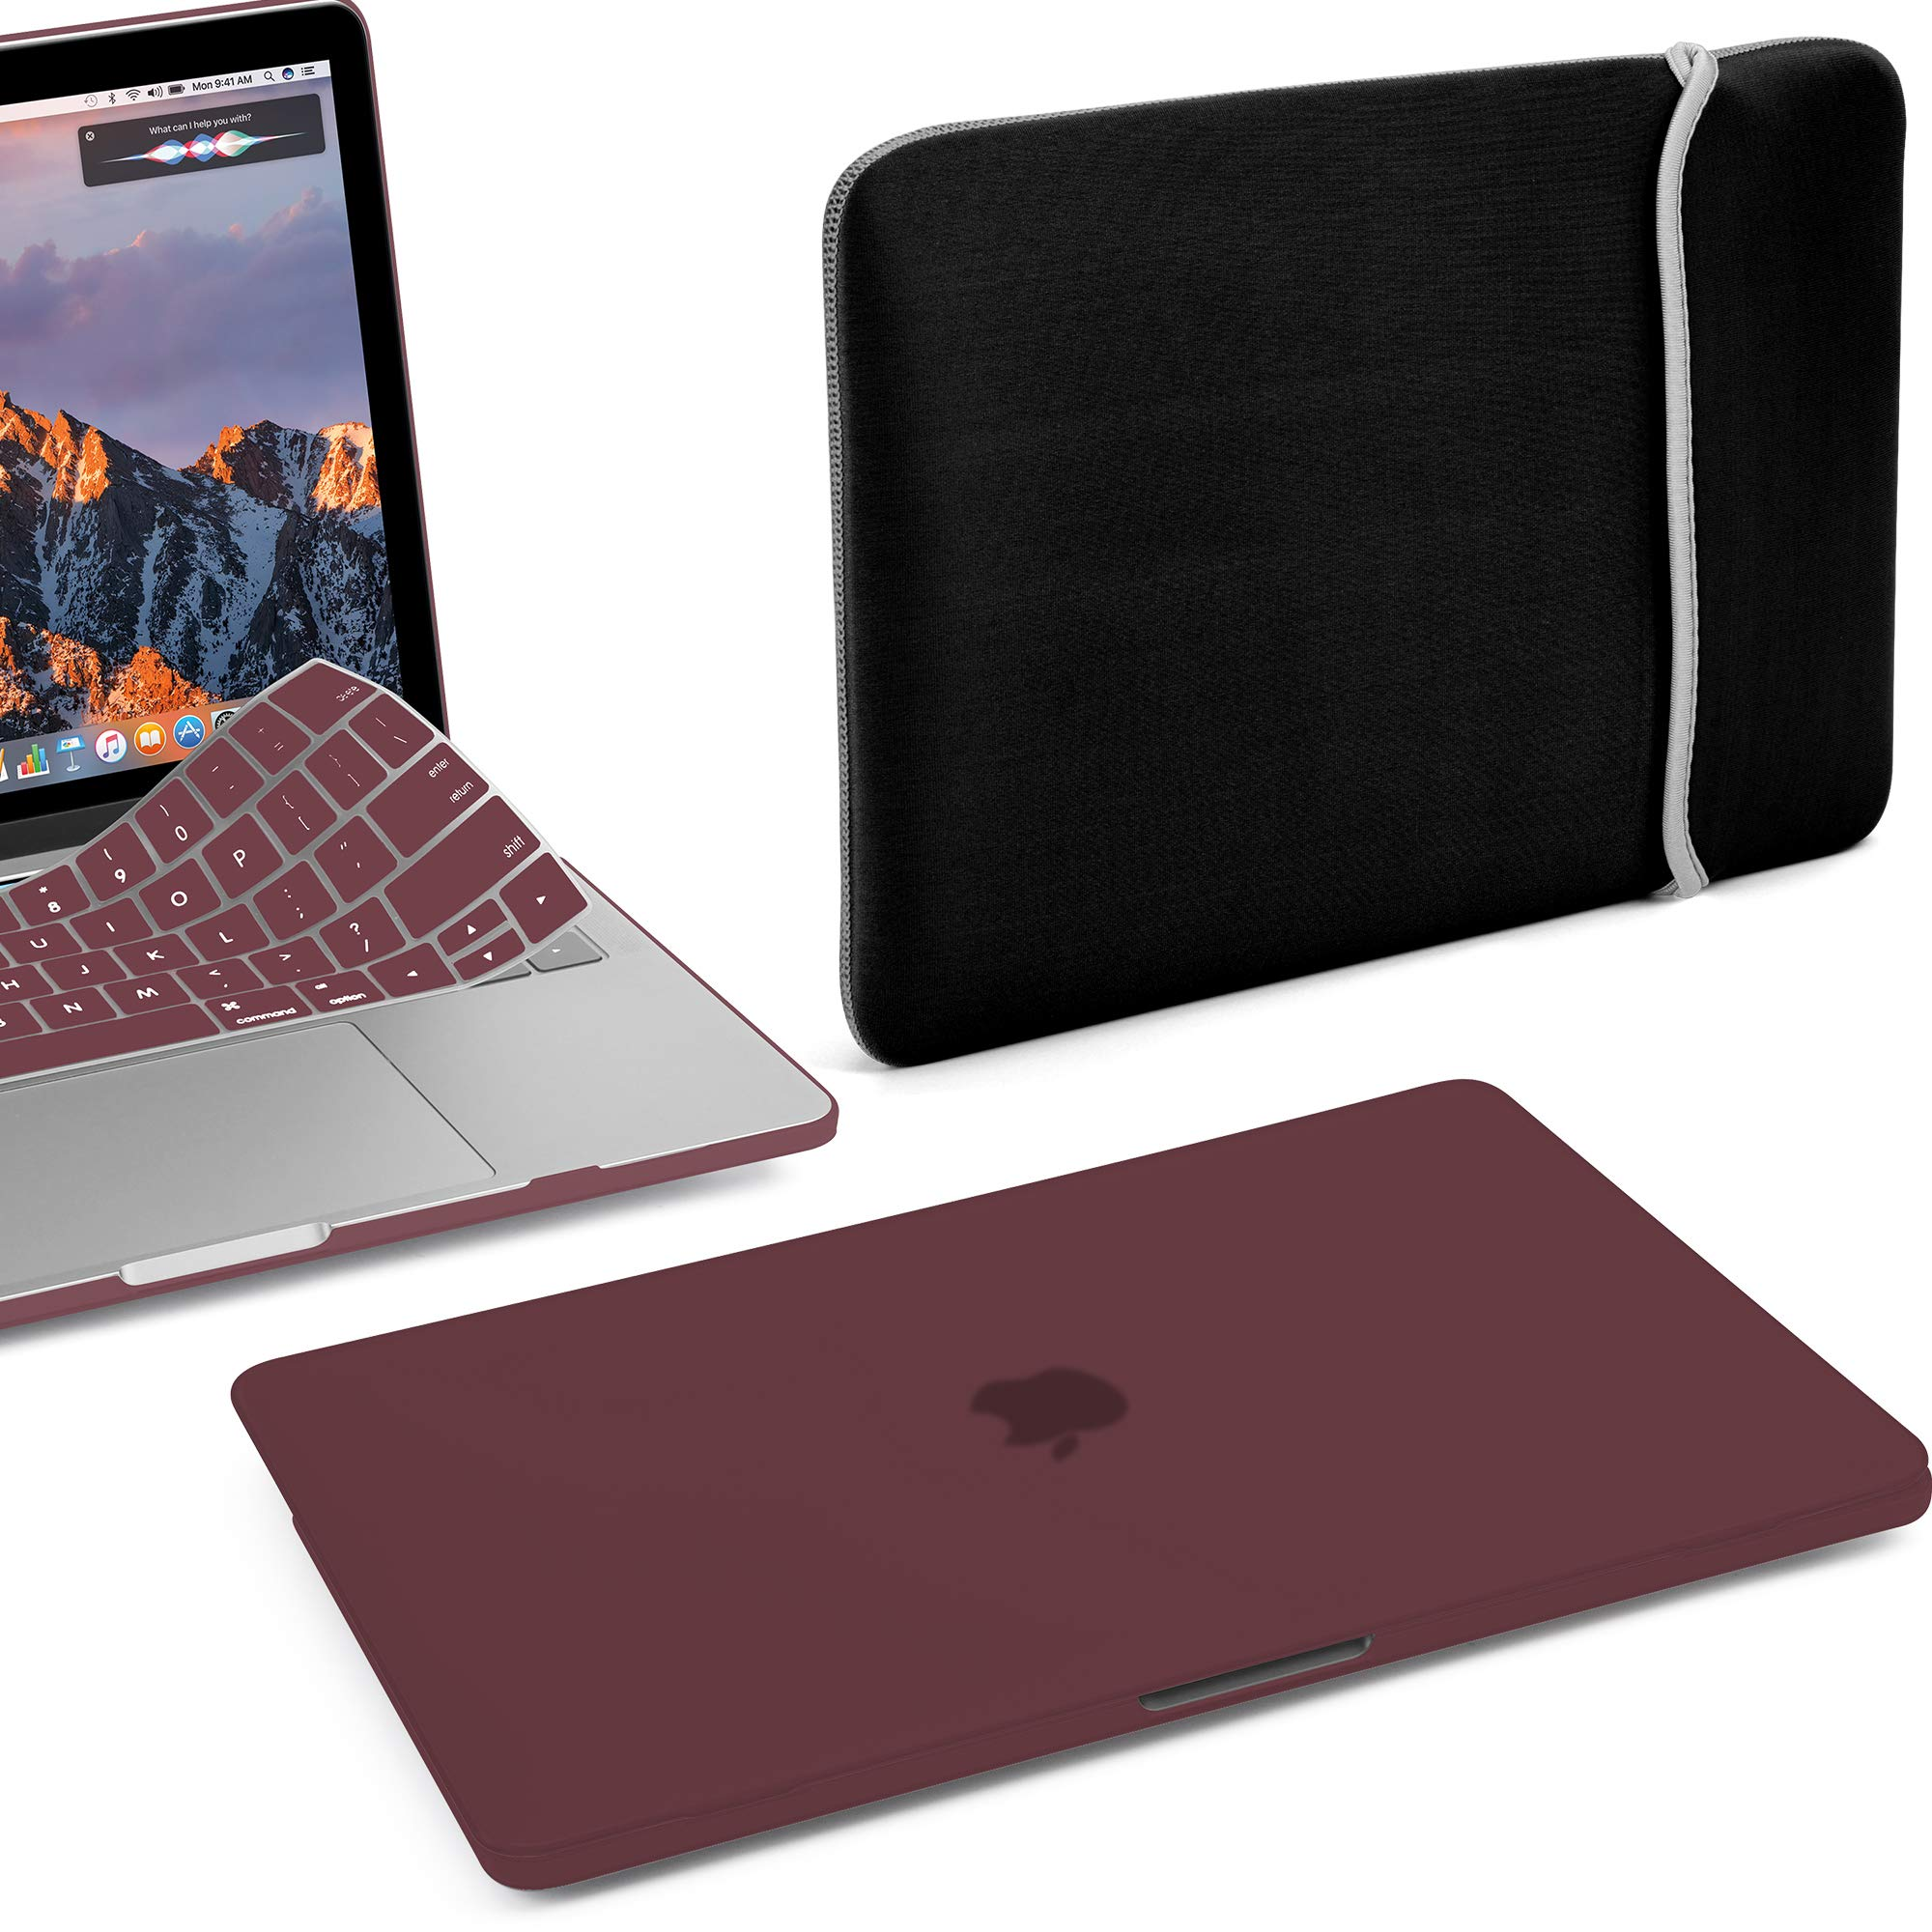 GMYLE MacBook Pro 13 Inch Case 2018 2017 2016 A1989 A1708 A1706 New Touch Bar 3 in 1 Bundle, Plastic Hard Shell, Water Repellent Lycra Sleeve Bag Travel, Keyboard Cover Set - Burgundy Red